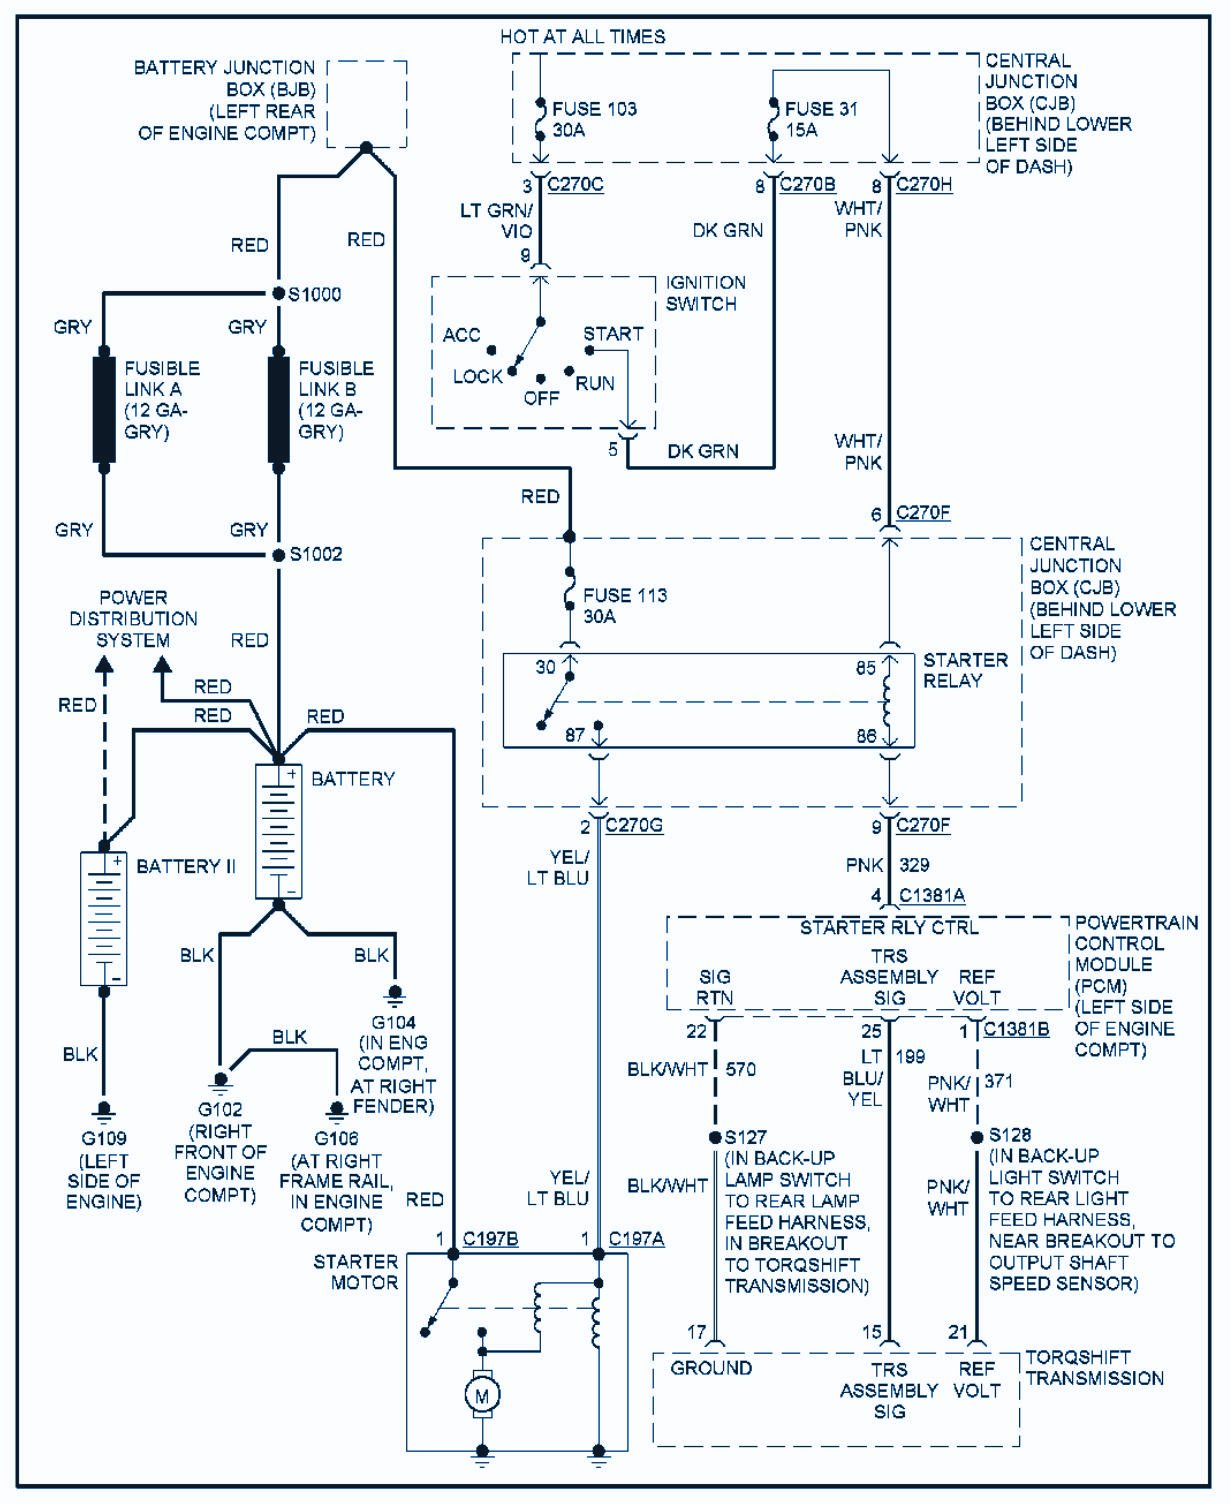 2008 f350 stereo wiring diagram 2008 f350 ignition wiring diagram october 2013 ~ electro circuit diaggram #6